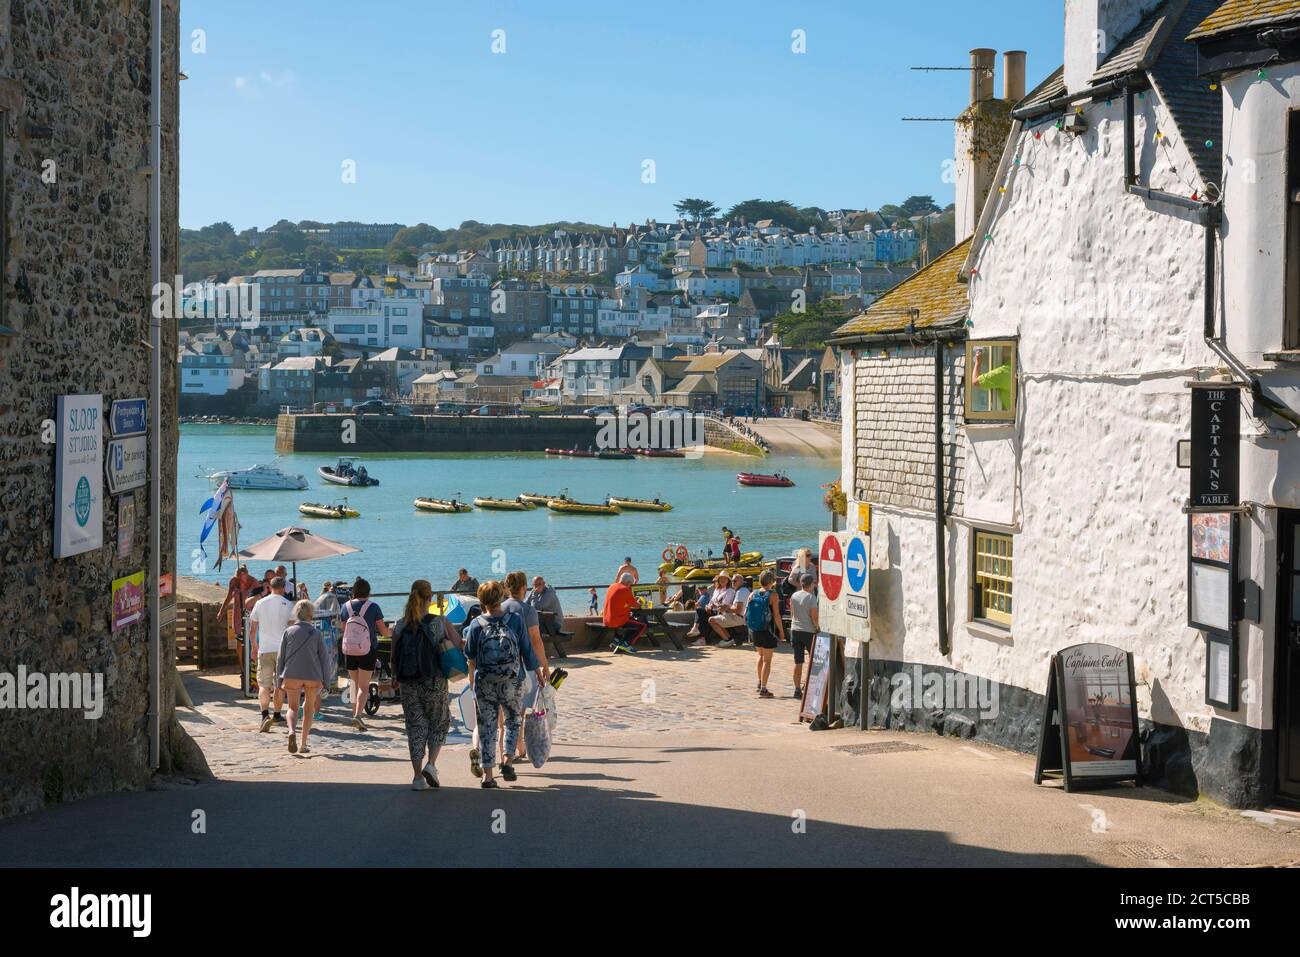 St Ives Cornwall, view in summer of people approaching the harbour area in St Ives, Cornwall, south west England, UK Stock Photo